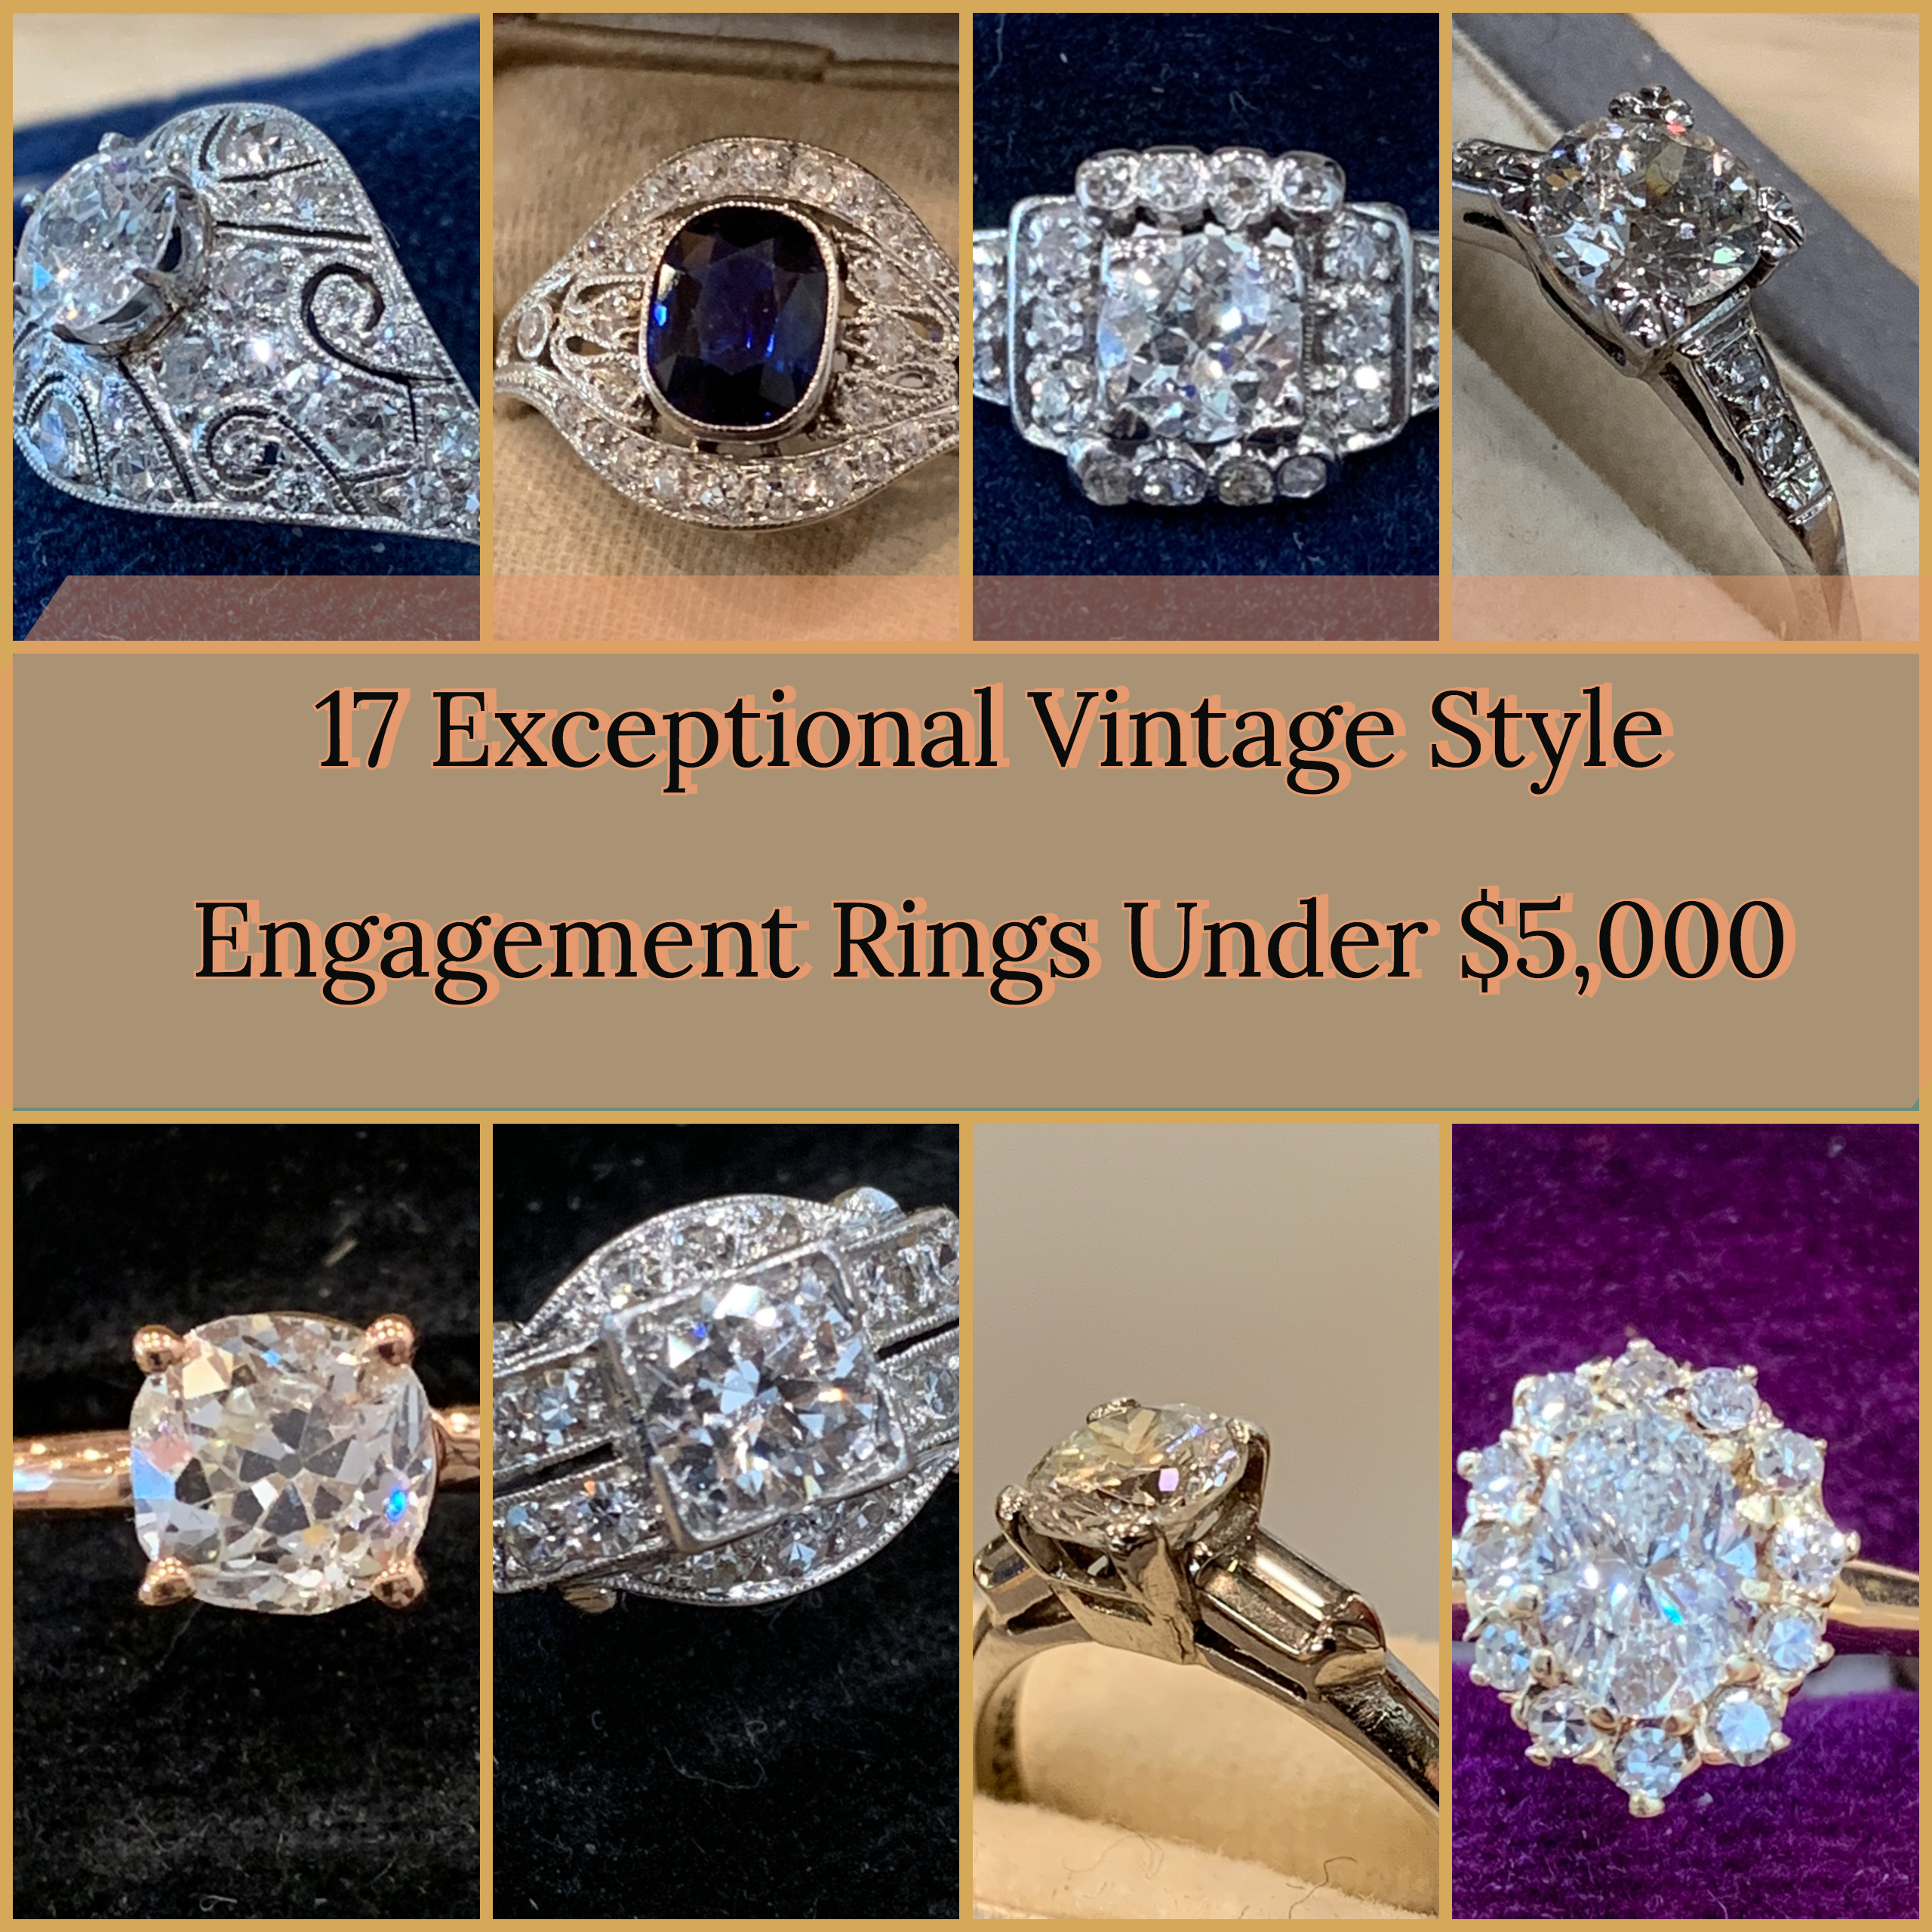 ad7f56838af38 17 Exceptional Vintage Style Engagement Rings Under $5,000